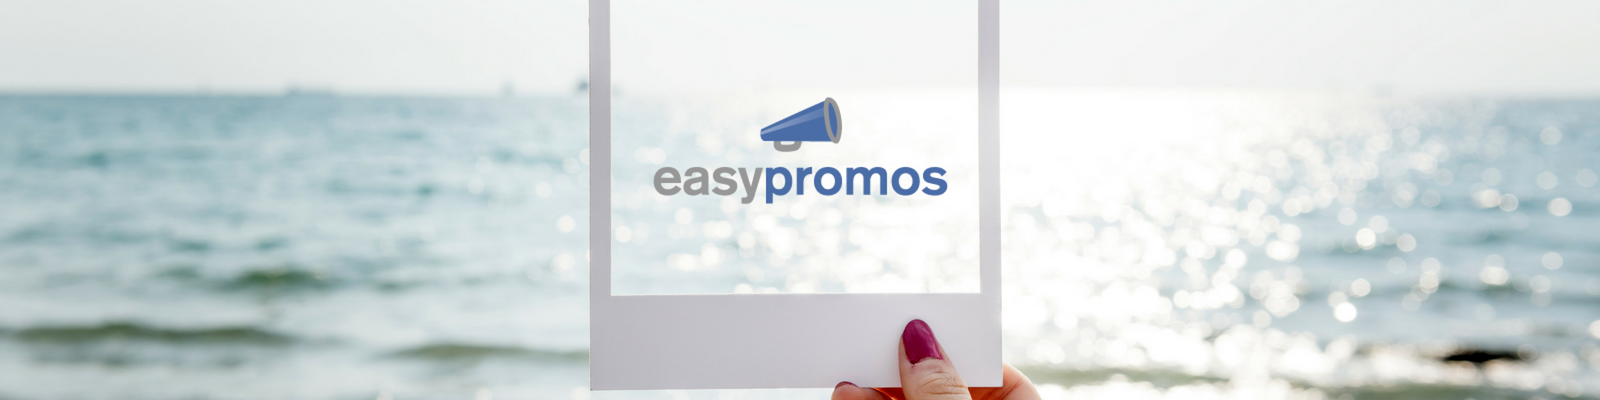 easypromos-post.png